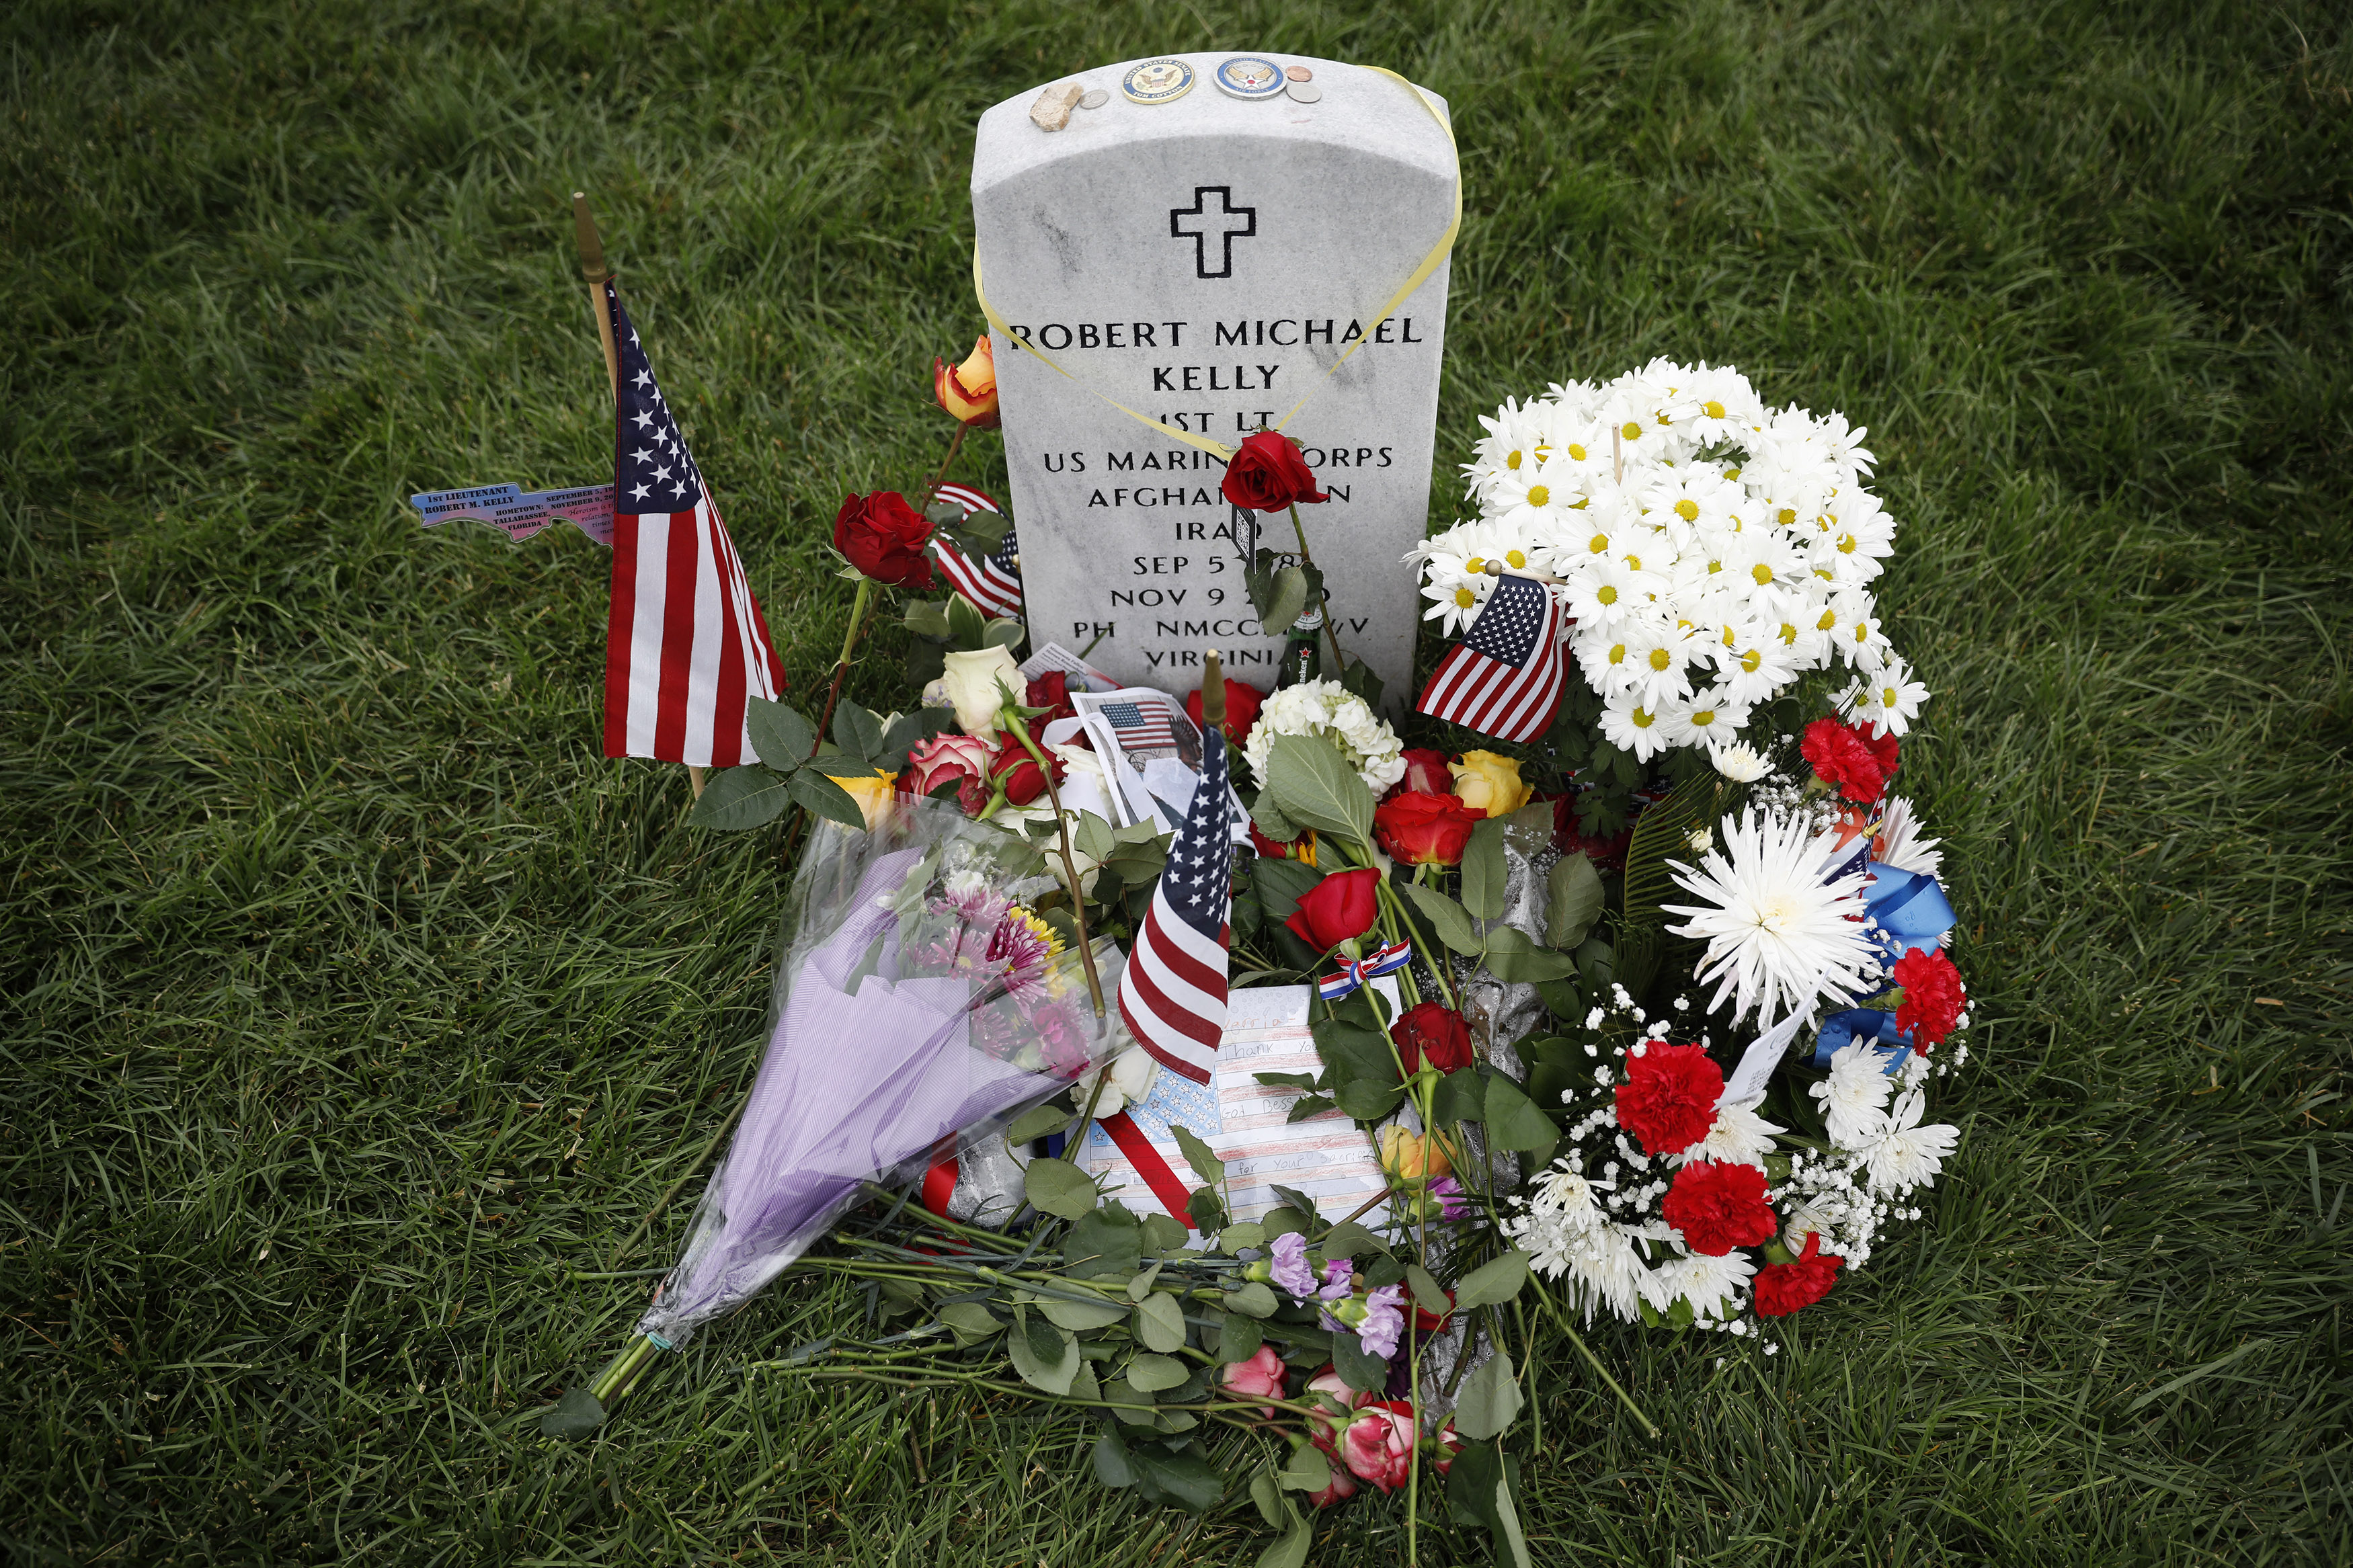 The grave of Marine Lt. Robert Kelly, son of White House Chief of Staff John Kelly, is seen at Arlington National Cemetery on Memorial Day, May 27, 2018 in Arlington, Virginia